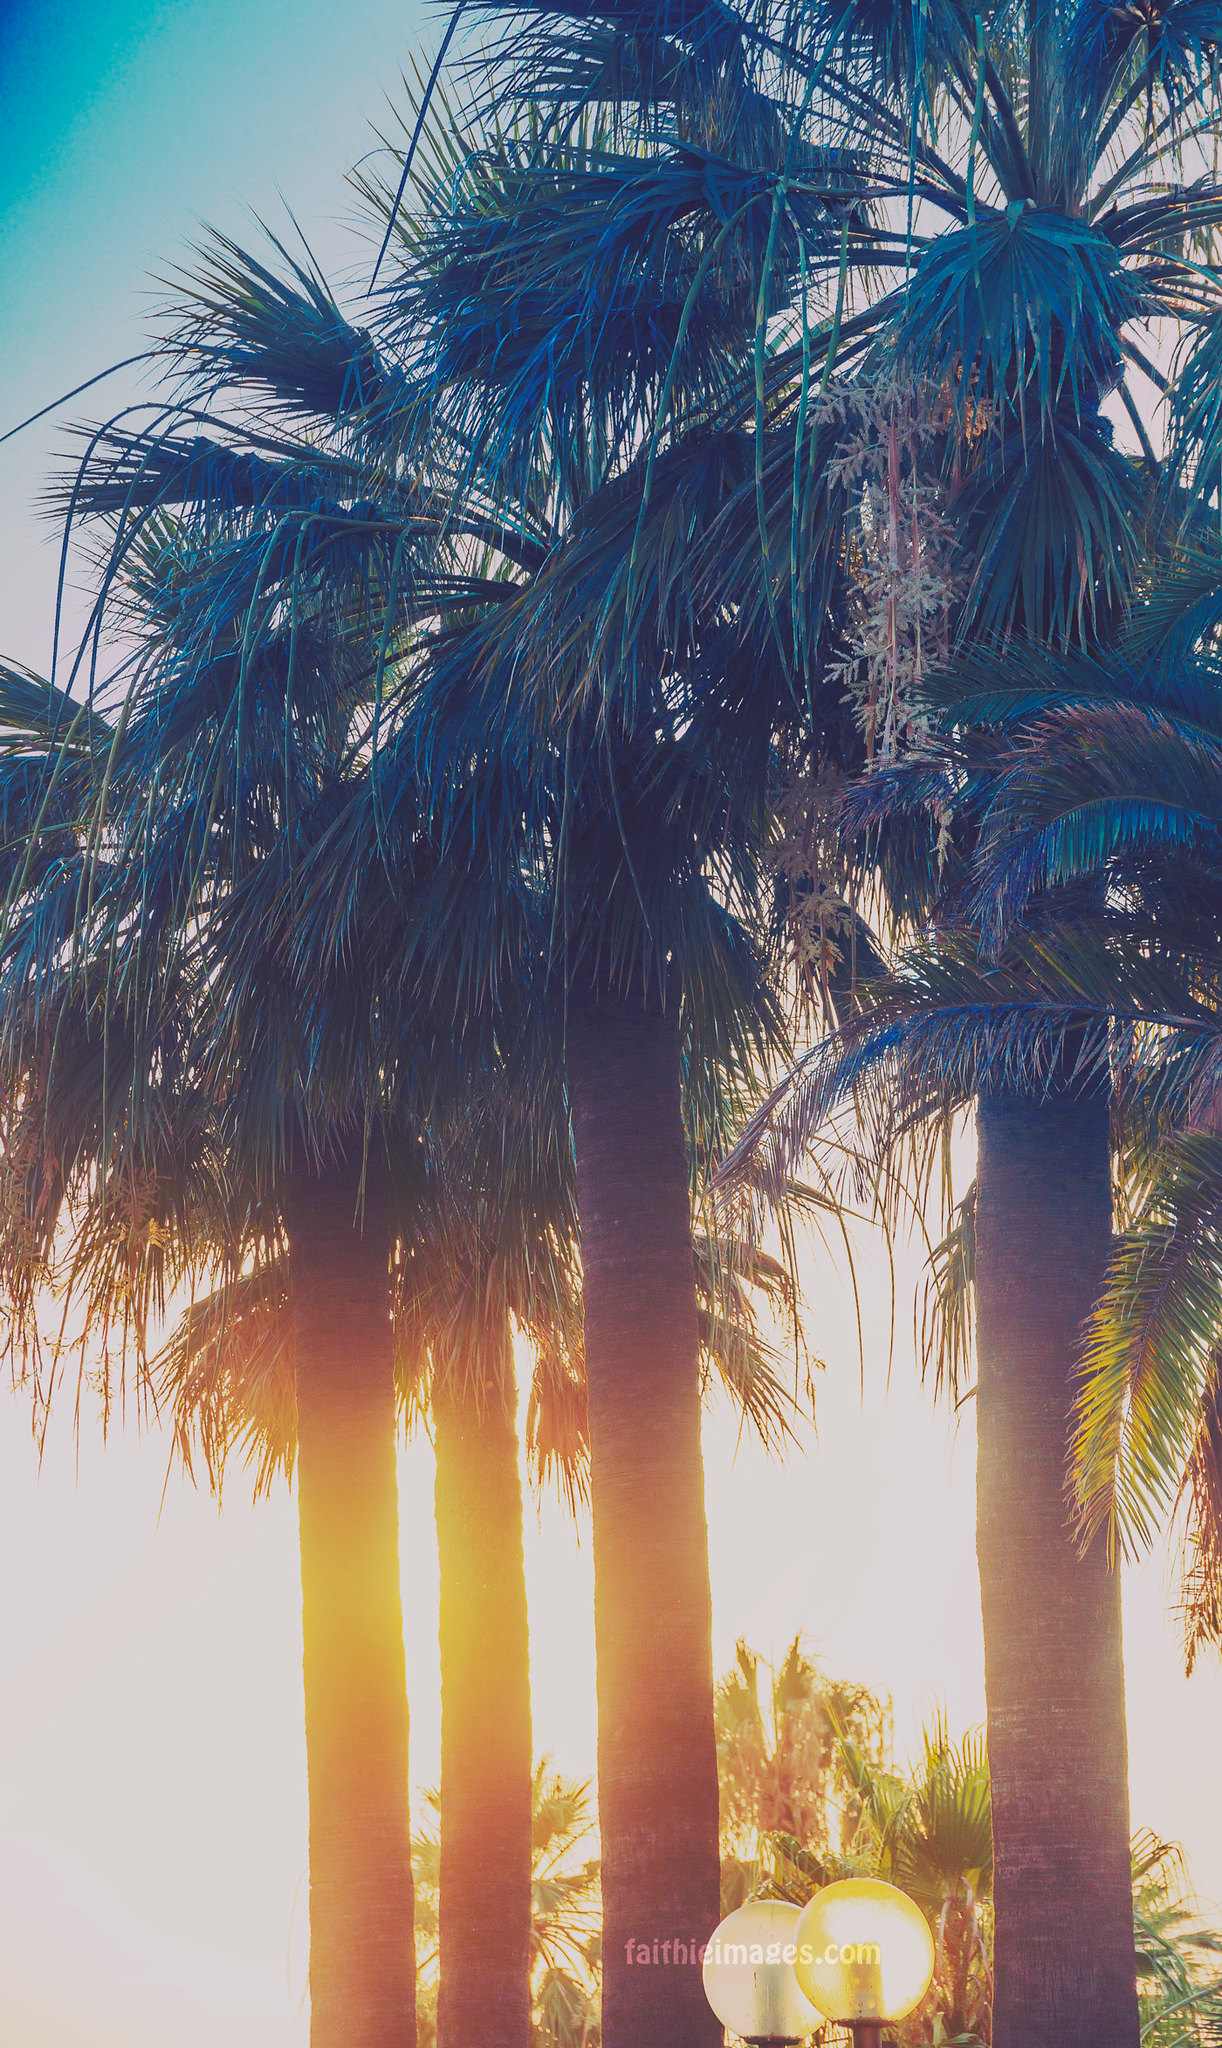 Sun shining among palm trees in Cannes